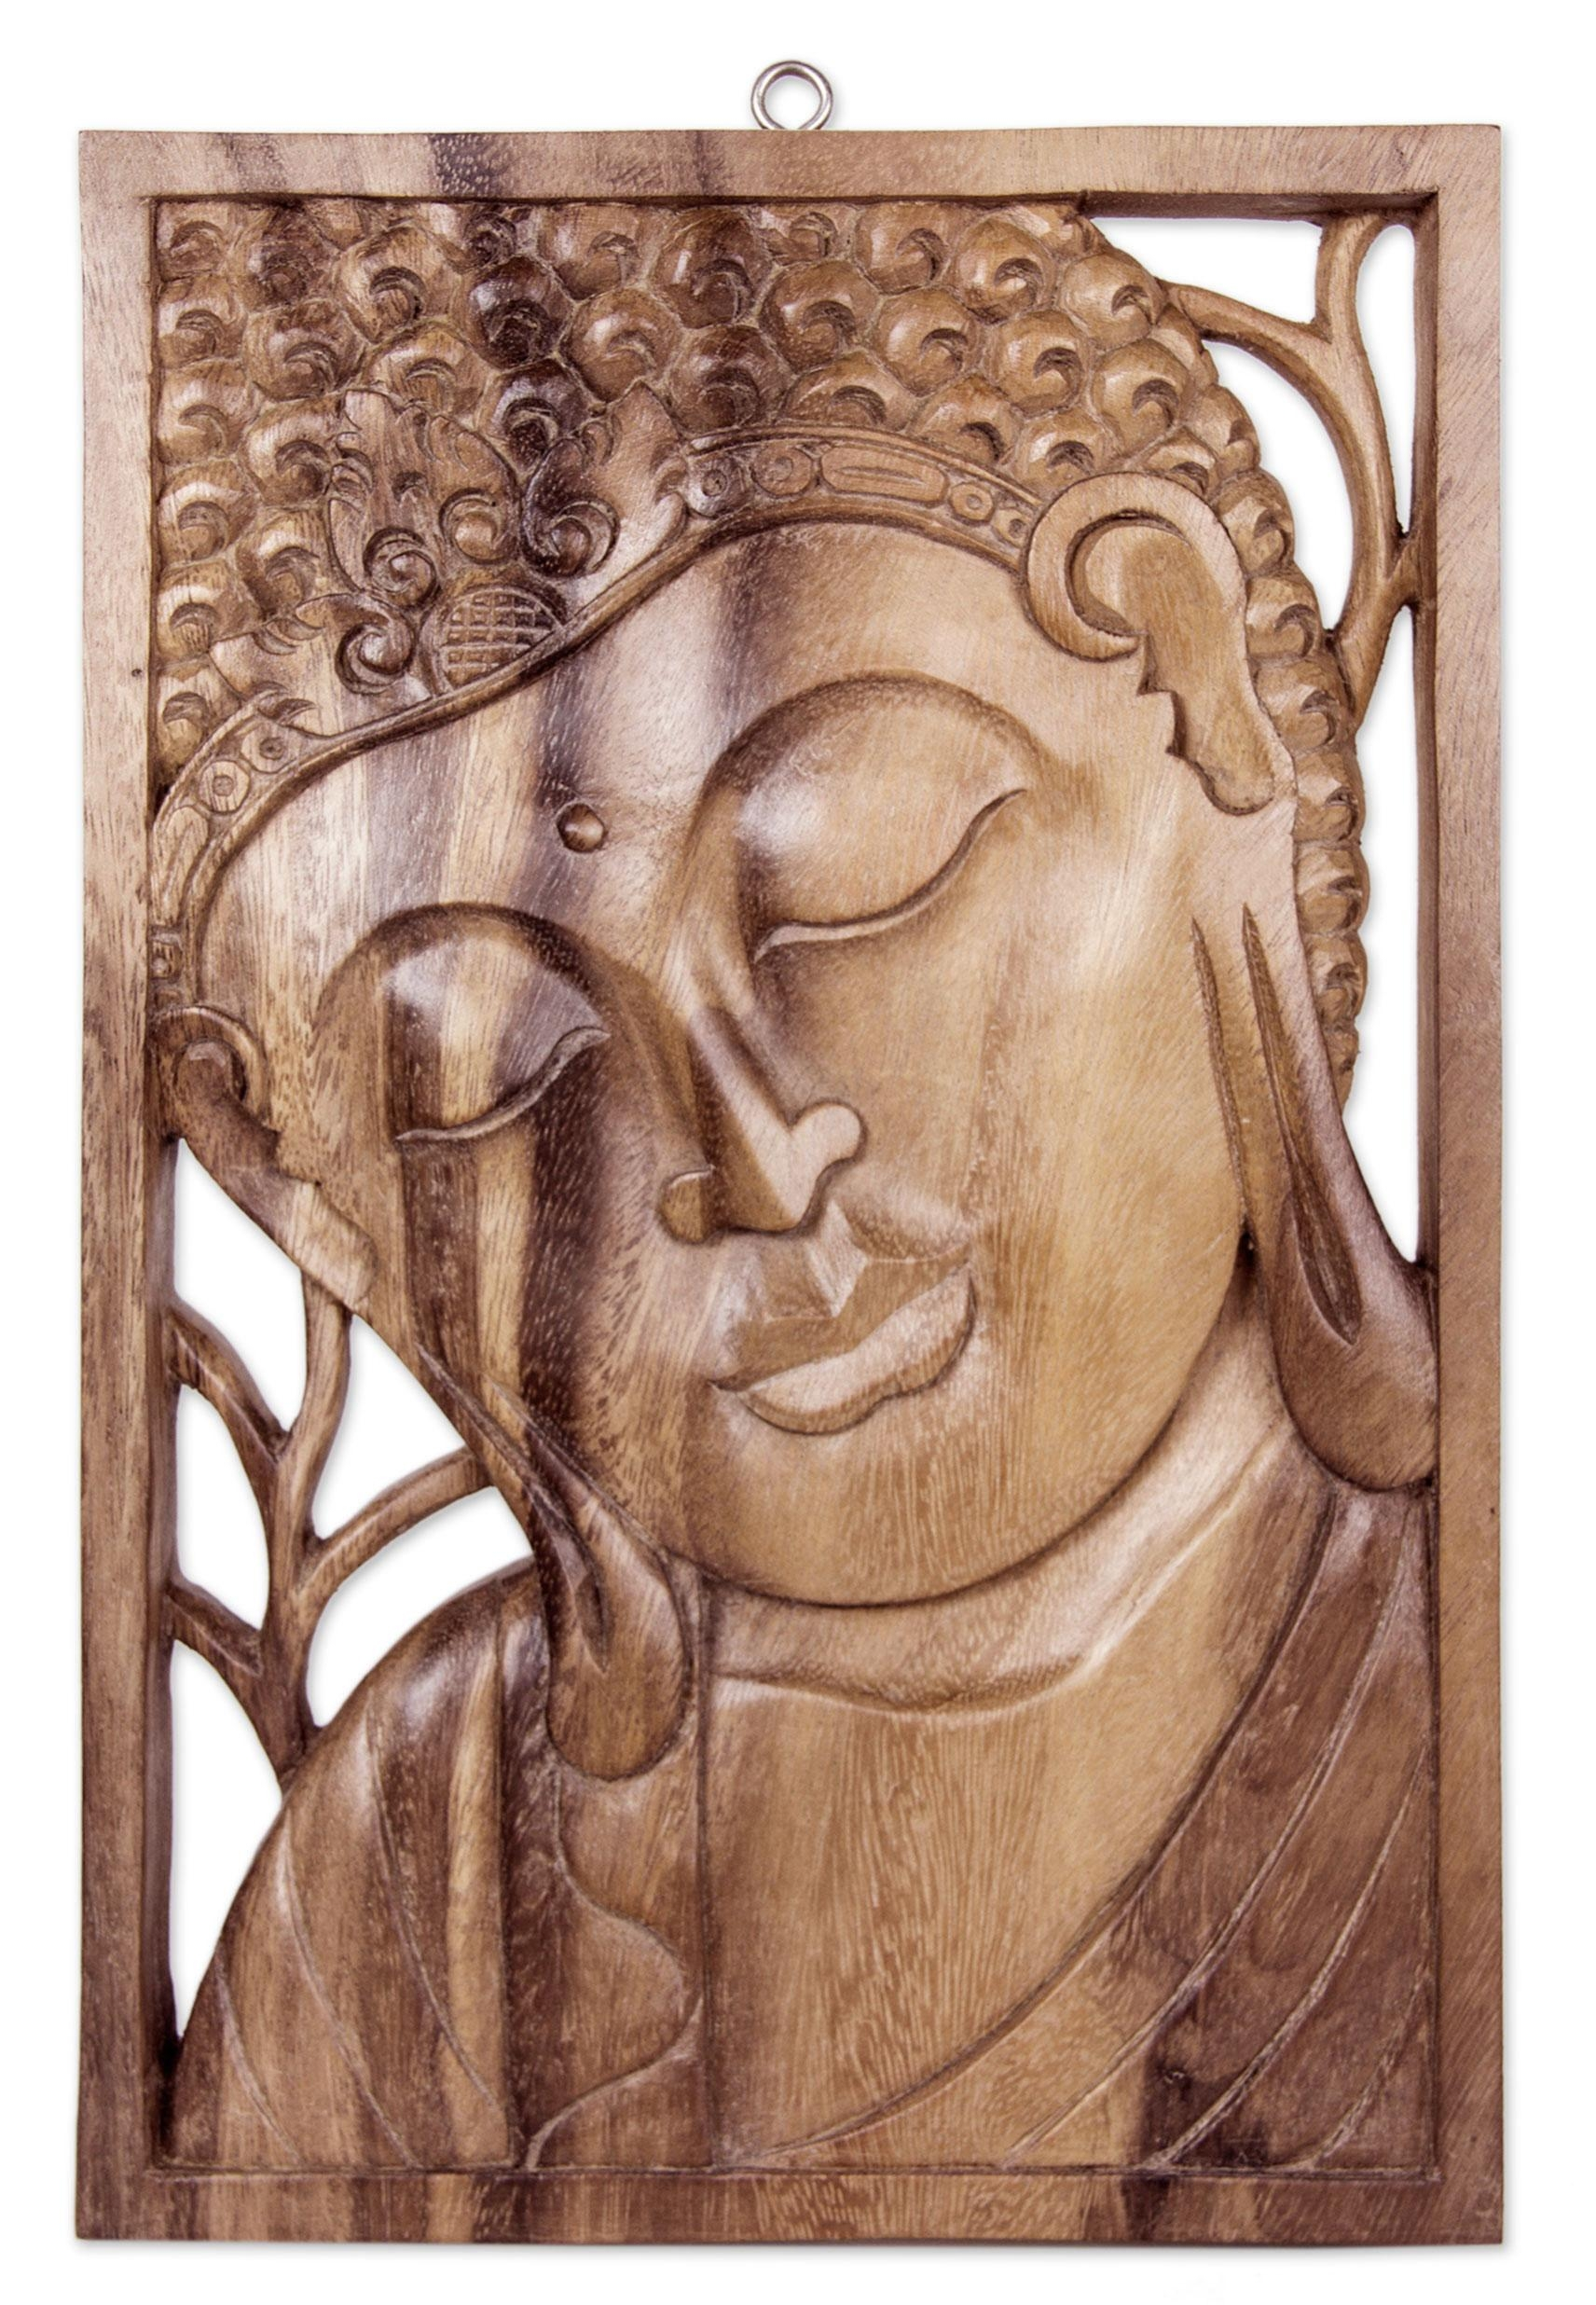 Zen Home Decor Ideas – Buddha Decor And Art | Novica With Regard To Buddha Wood Wall Art (Image 20 of 20)